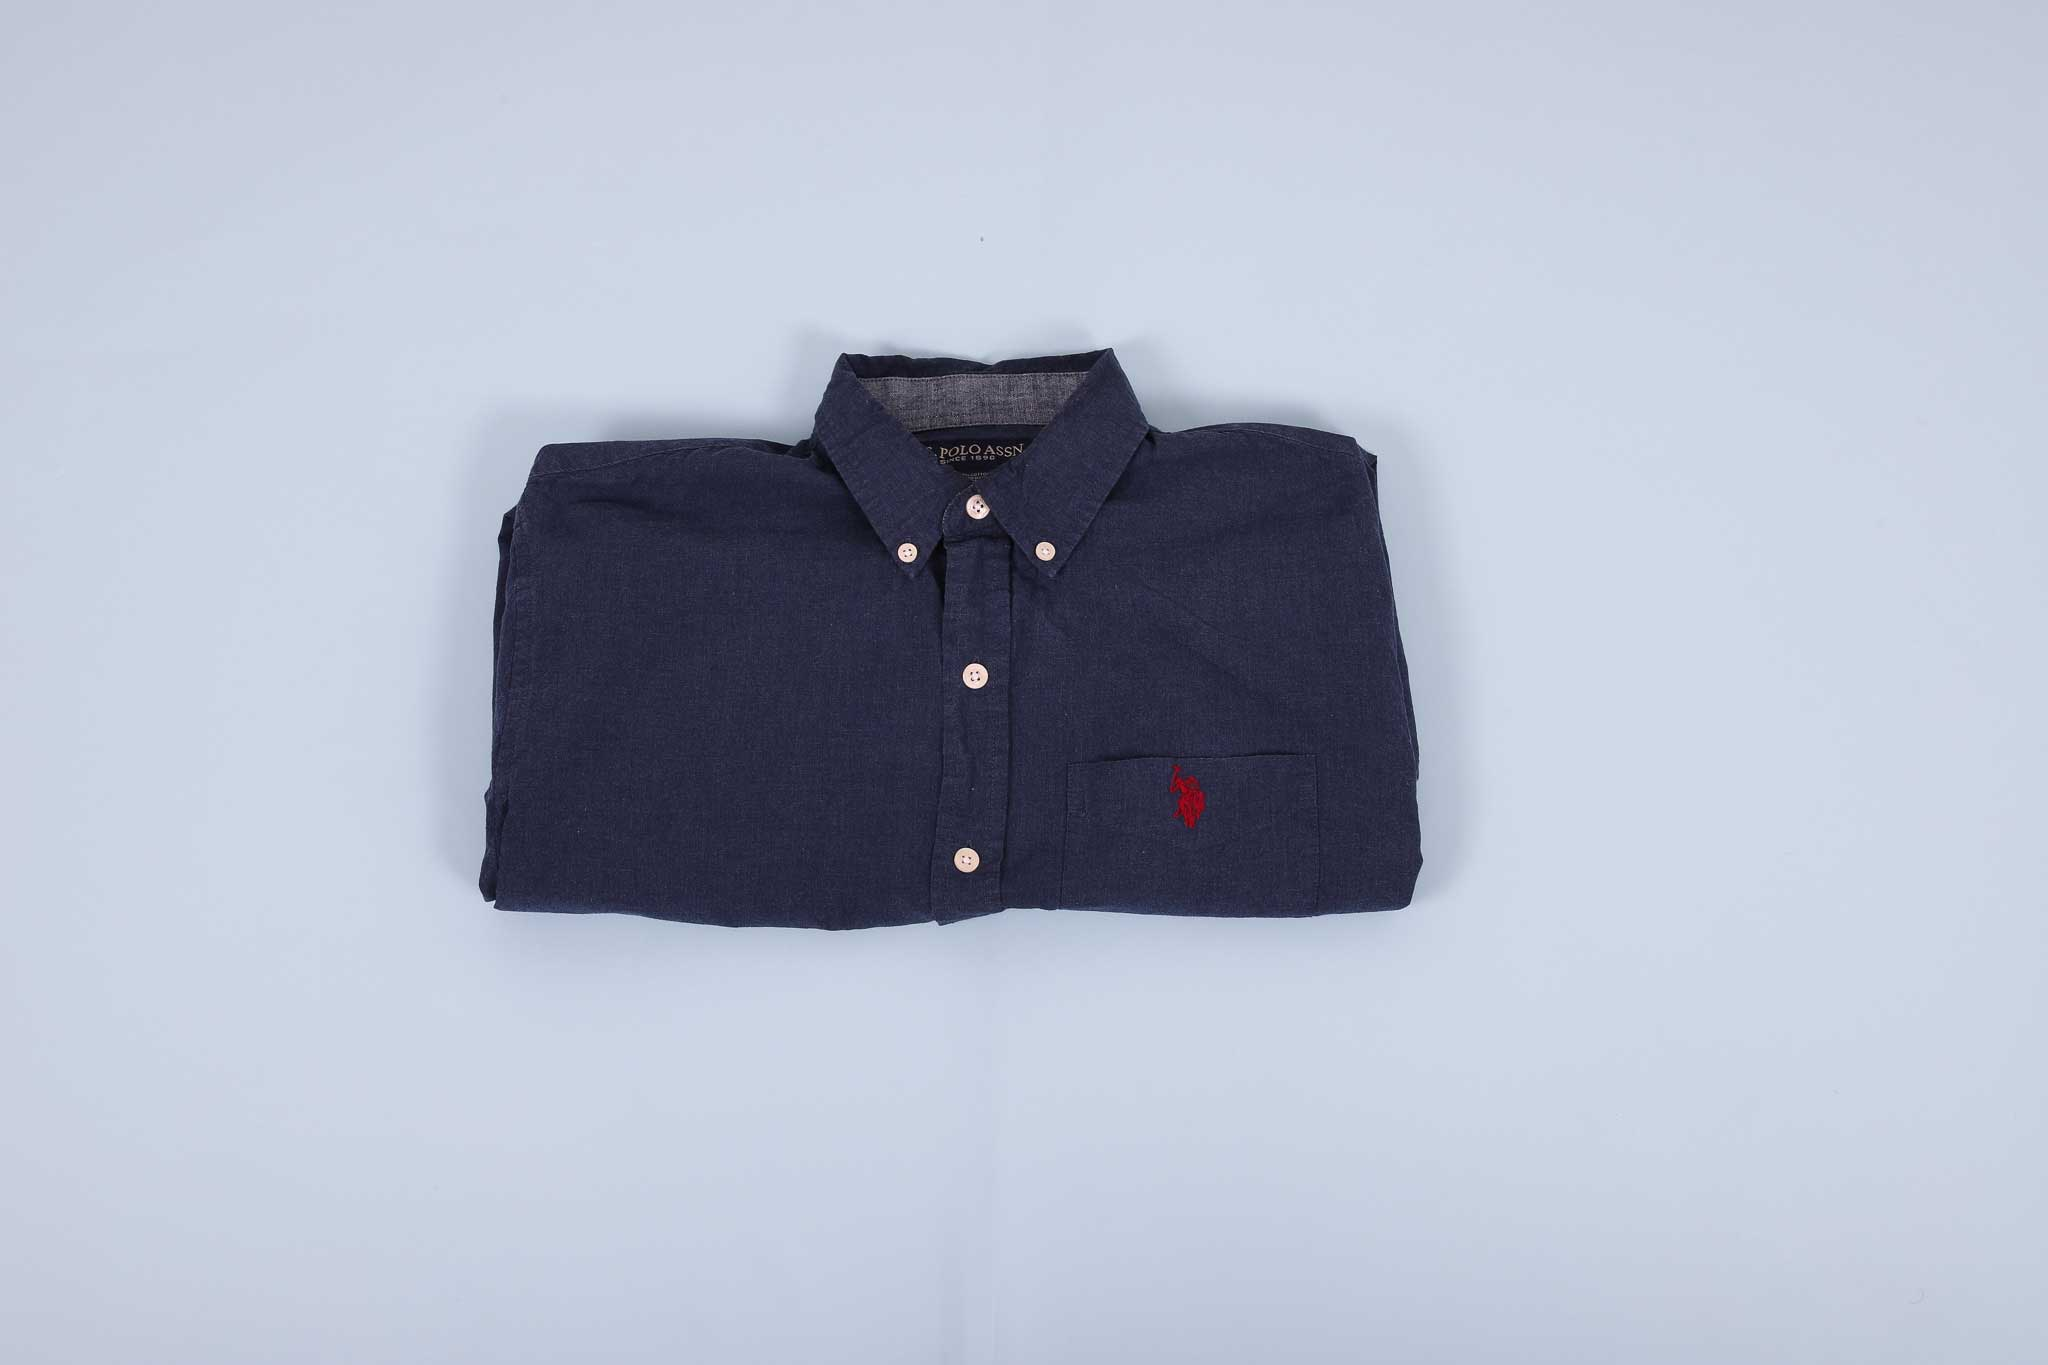 Navy buttoned up shirt folded into thirds agains a light blue background